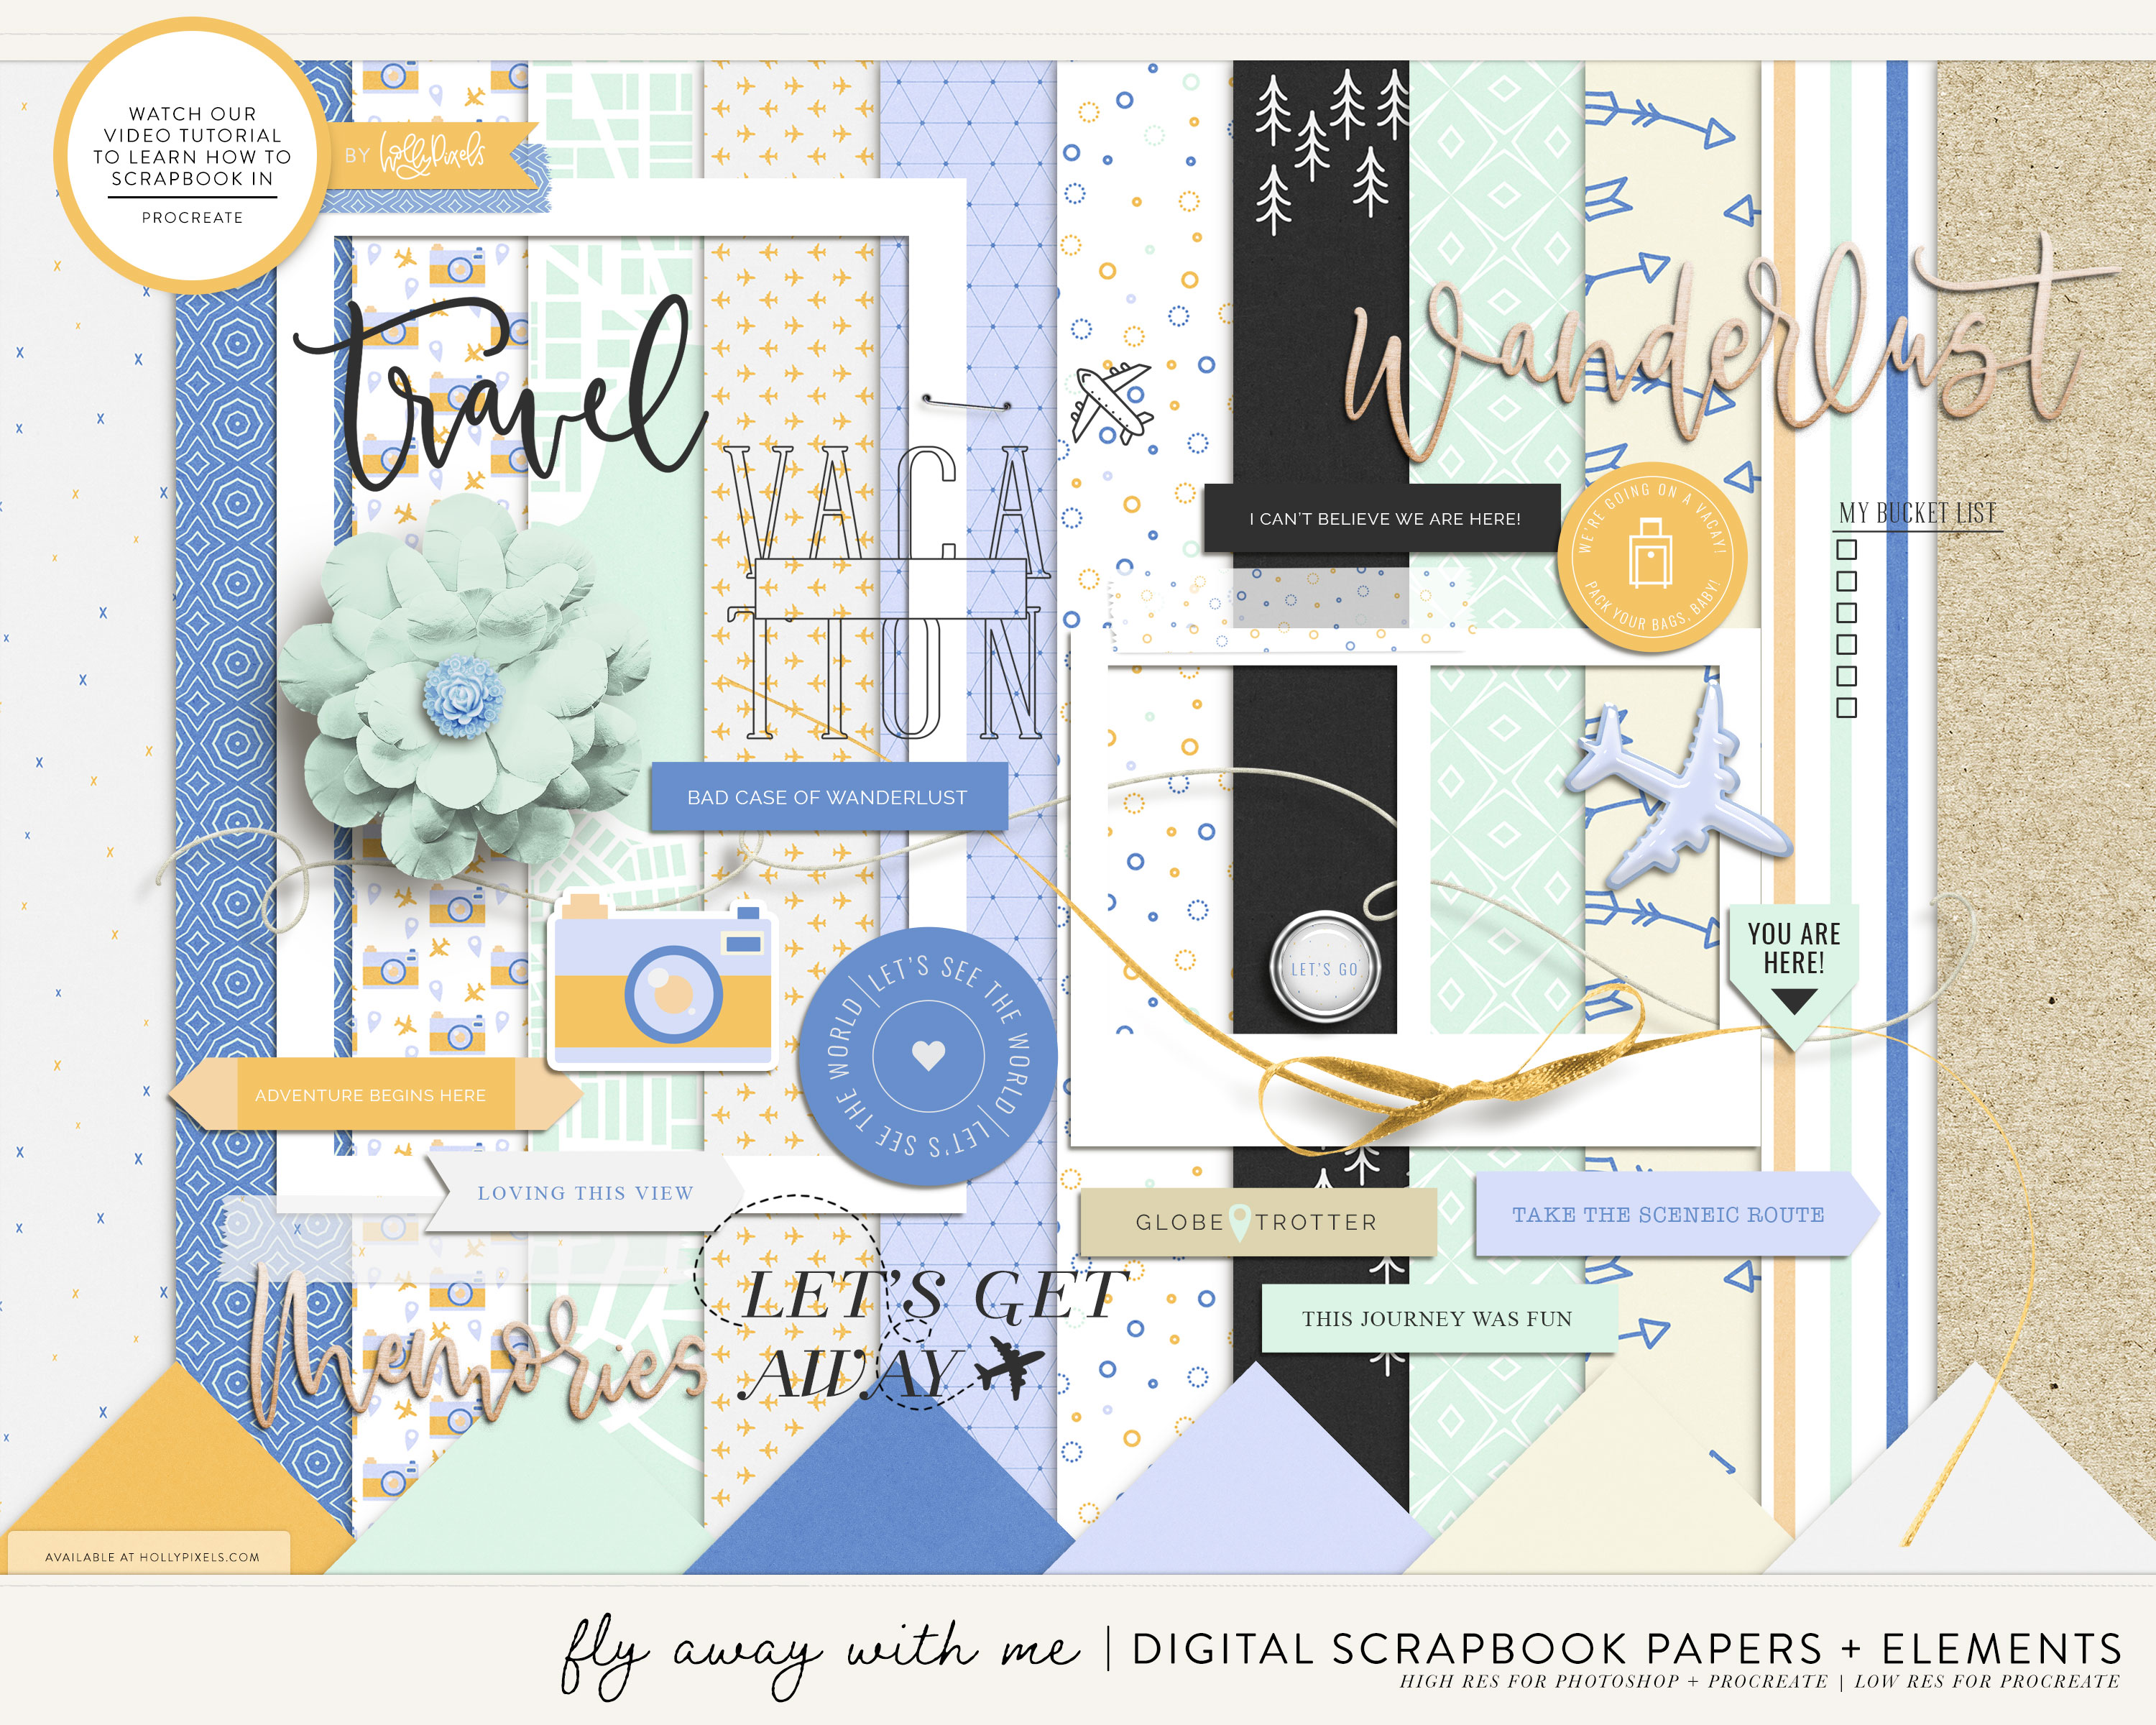 How to Scrapbook on the iPad with Procreate 1